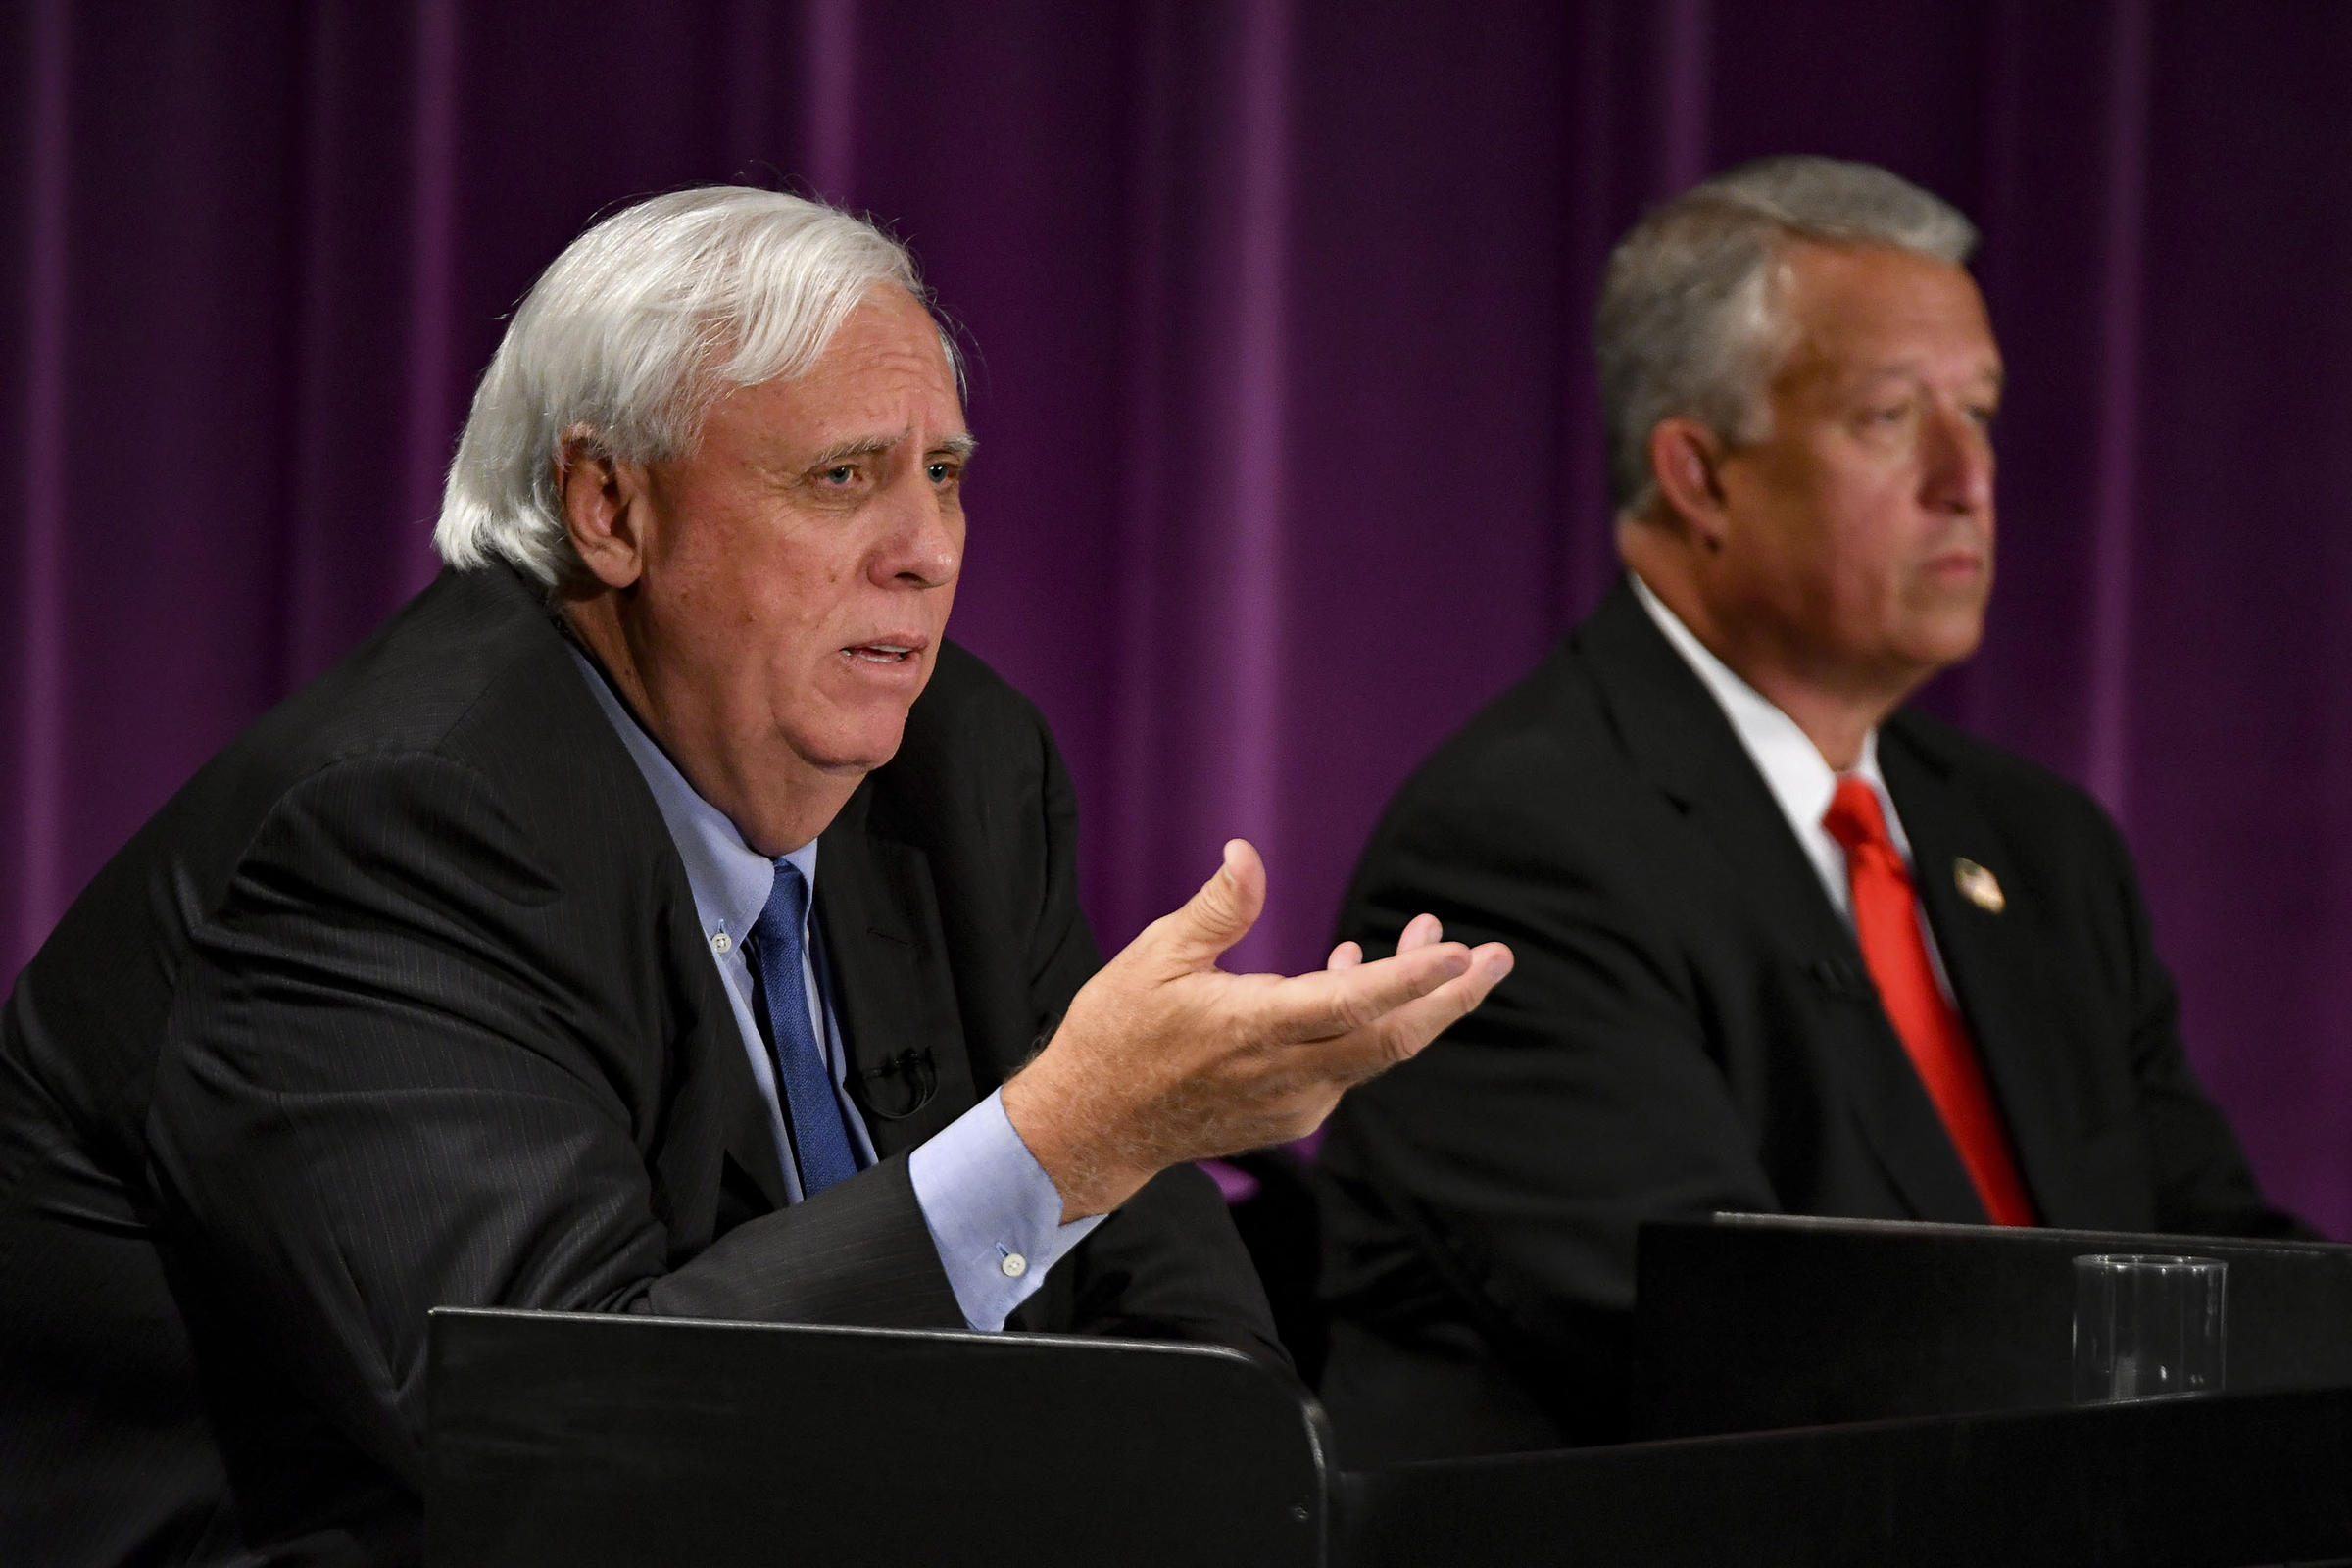 cole justice spar in 1st of 2 gubernatorial debates west virginia